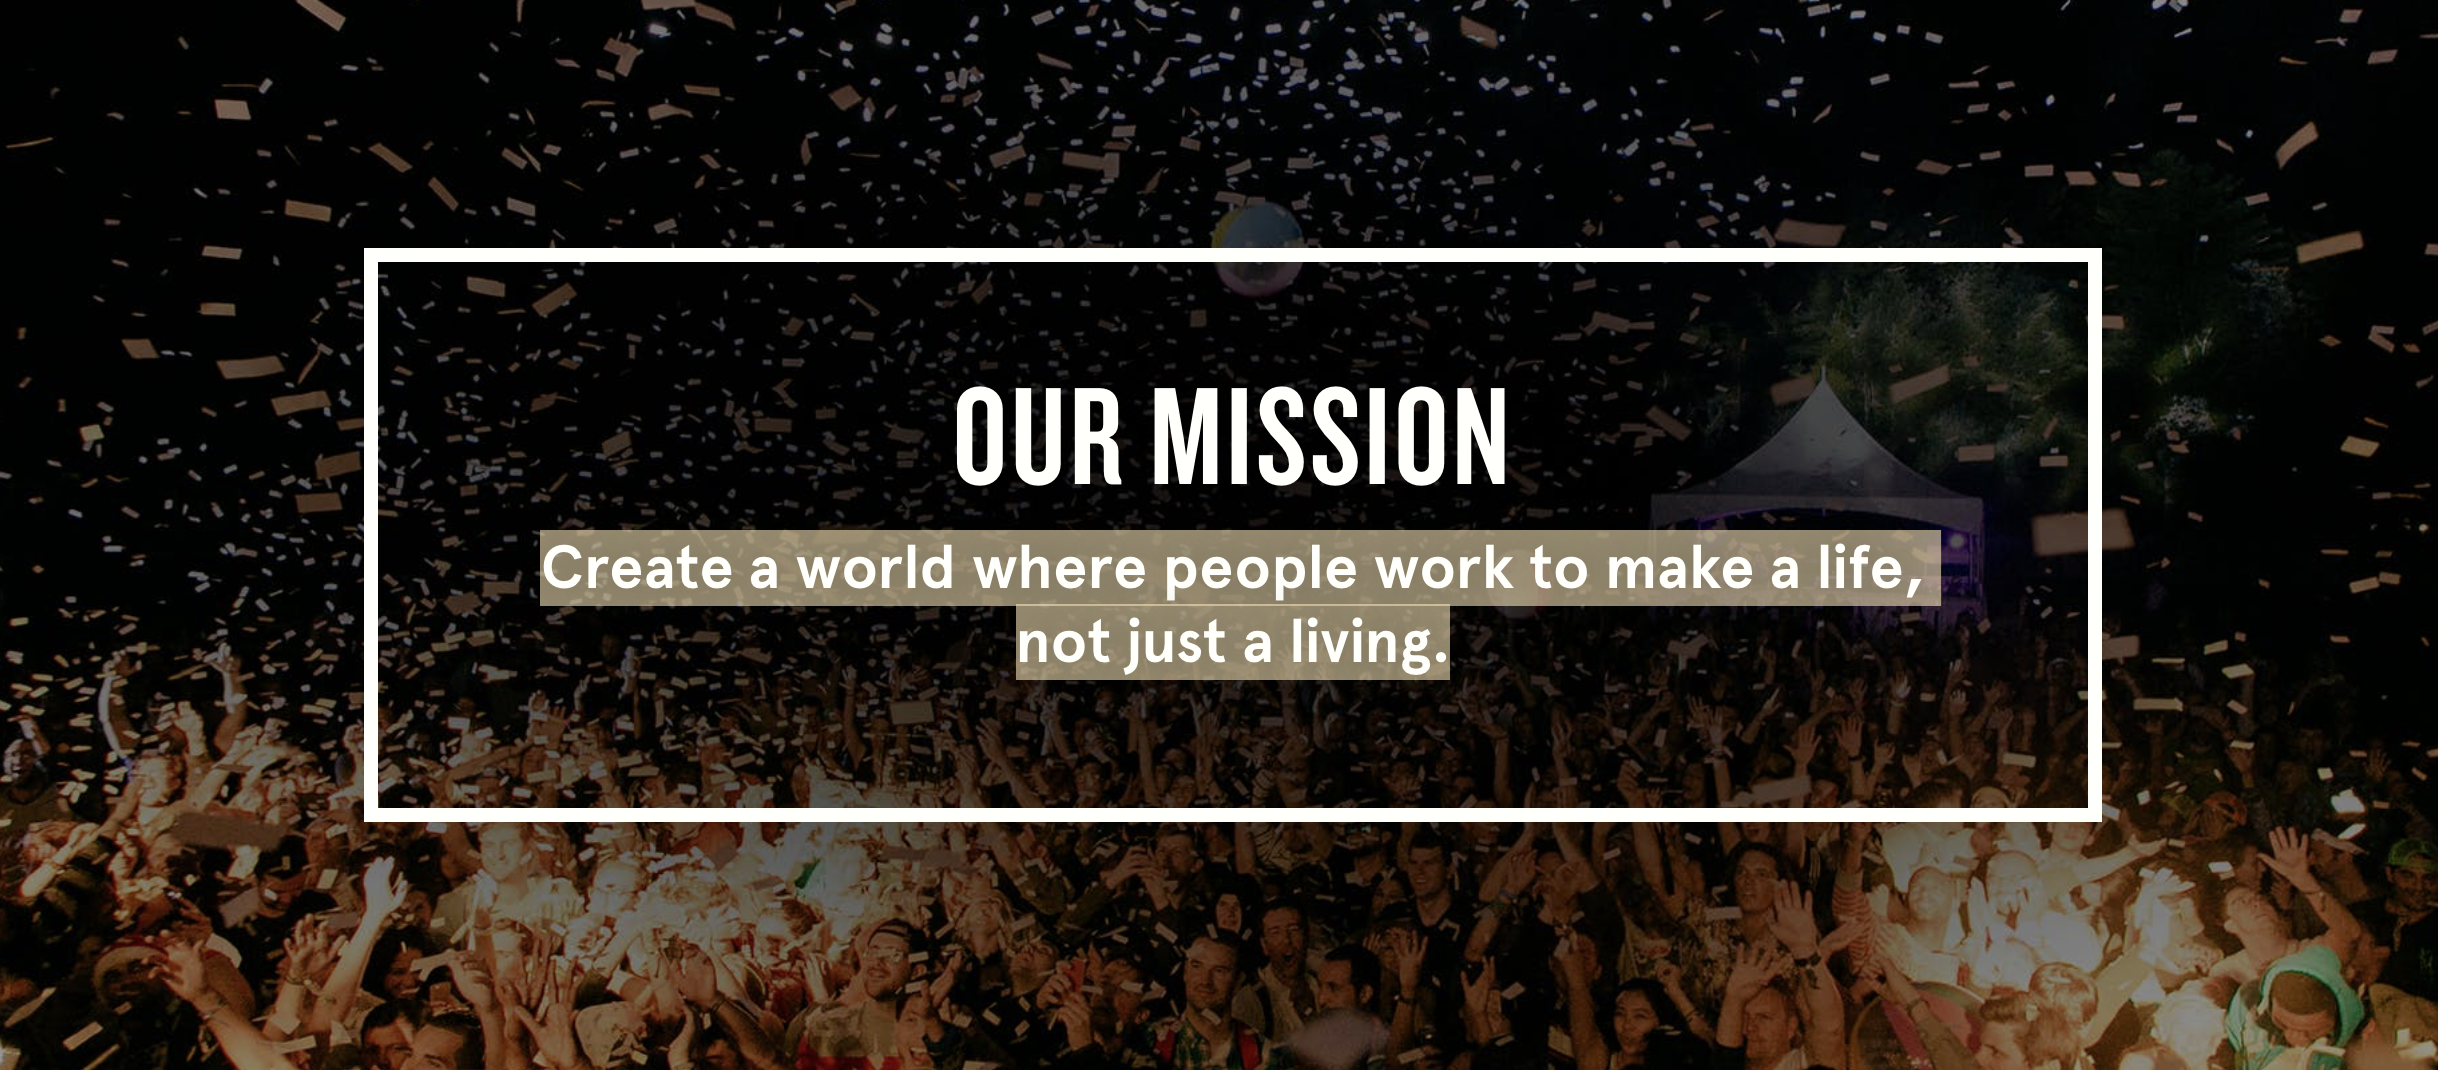 Our mission: Create a world where people work to make a life, not just a living.